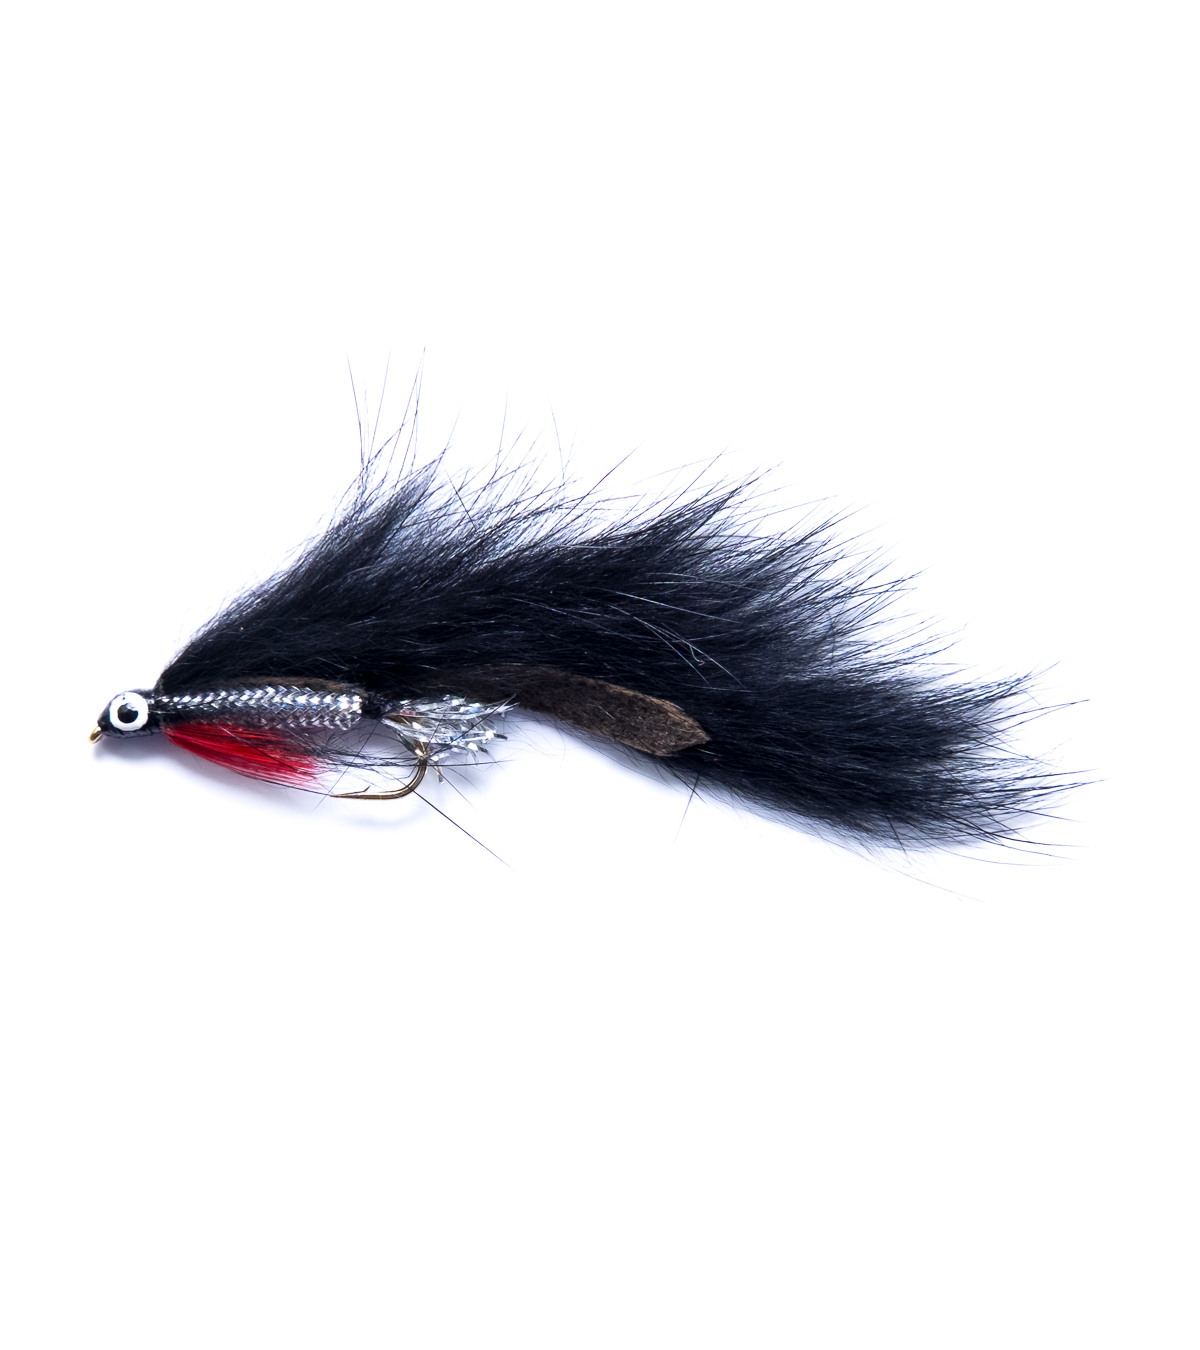 Zonkers Trout Fly Fishing Flies lures streamers Size 8 by Dragonflies